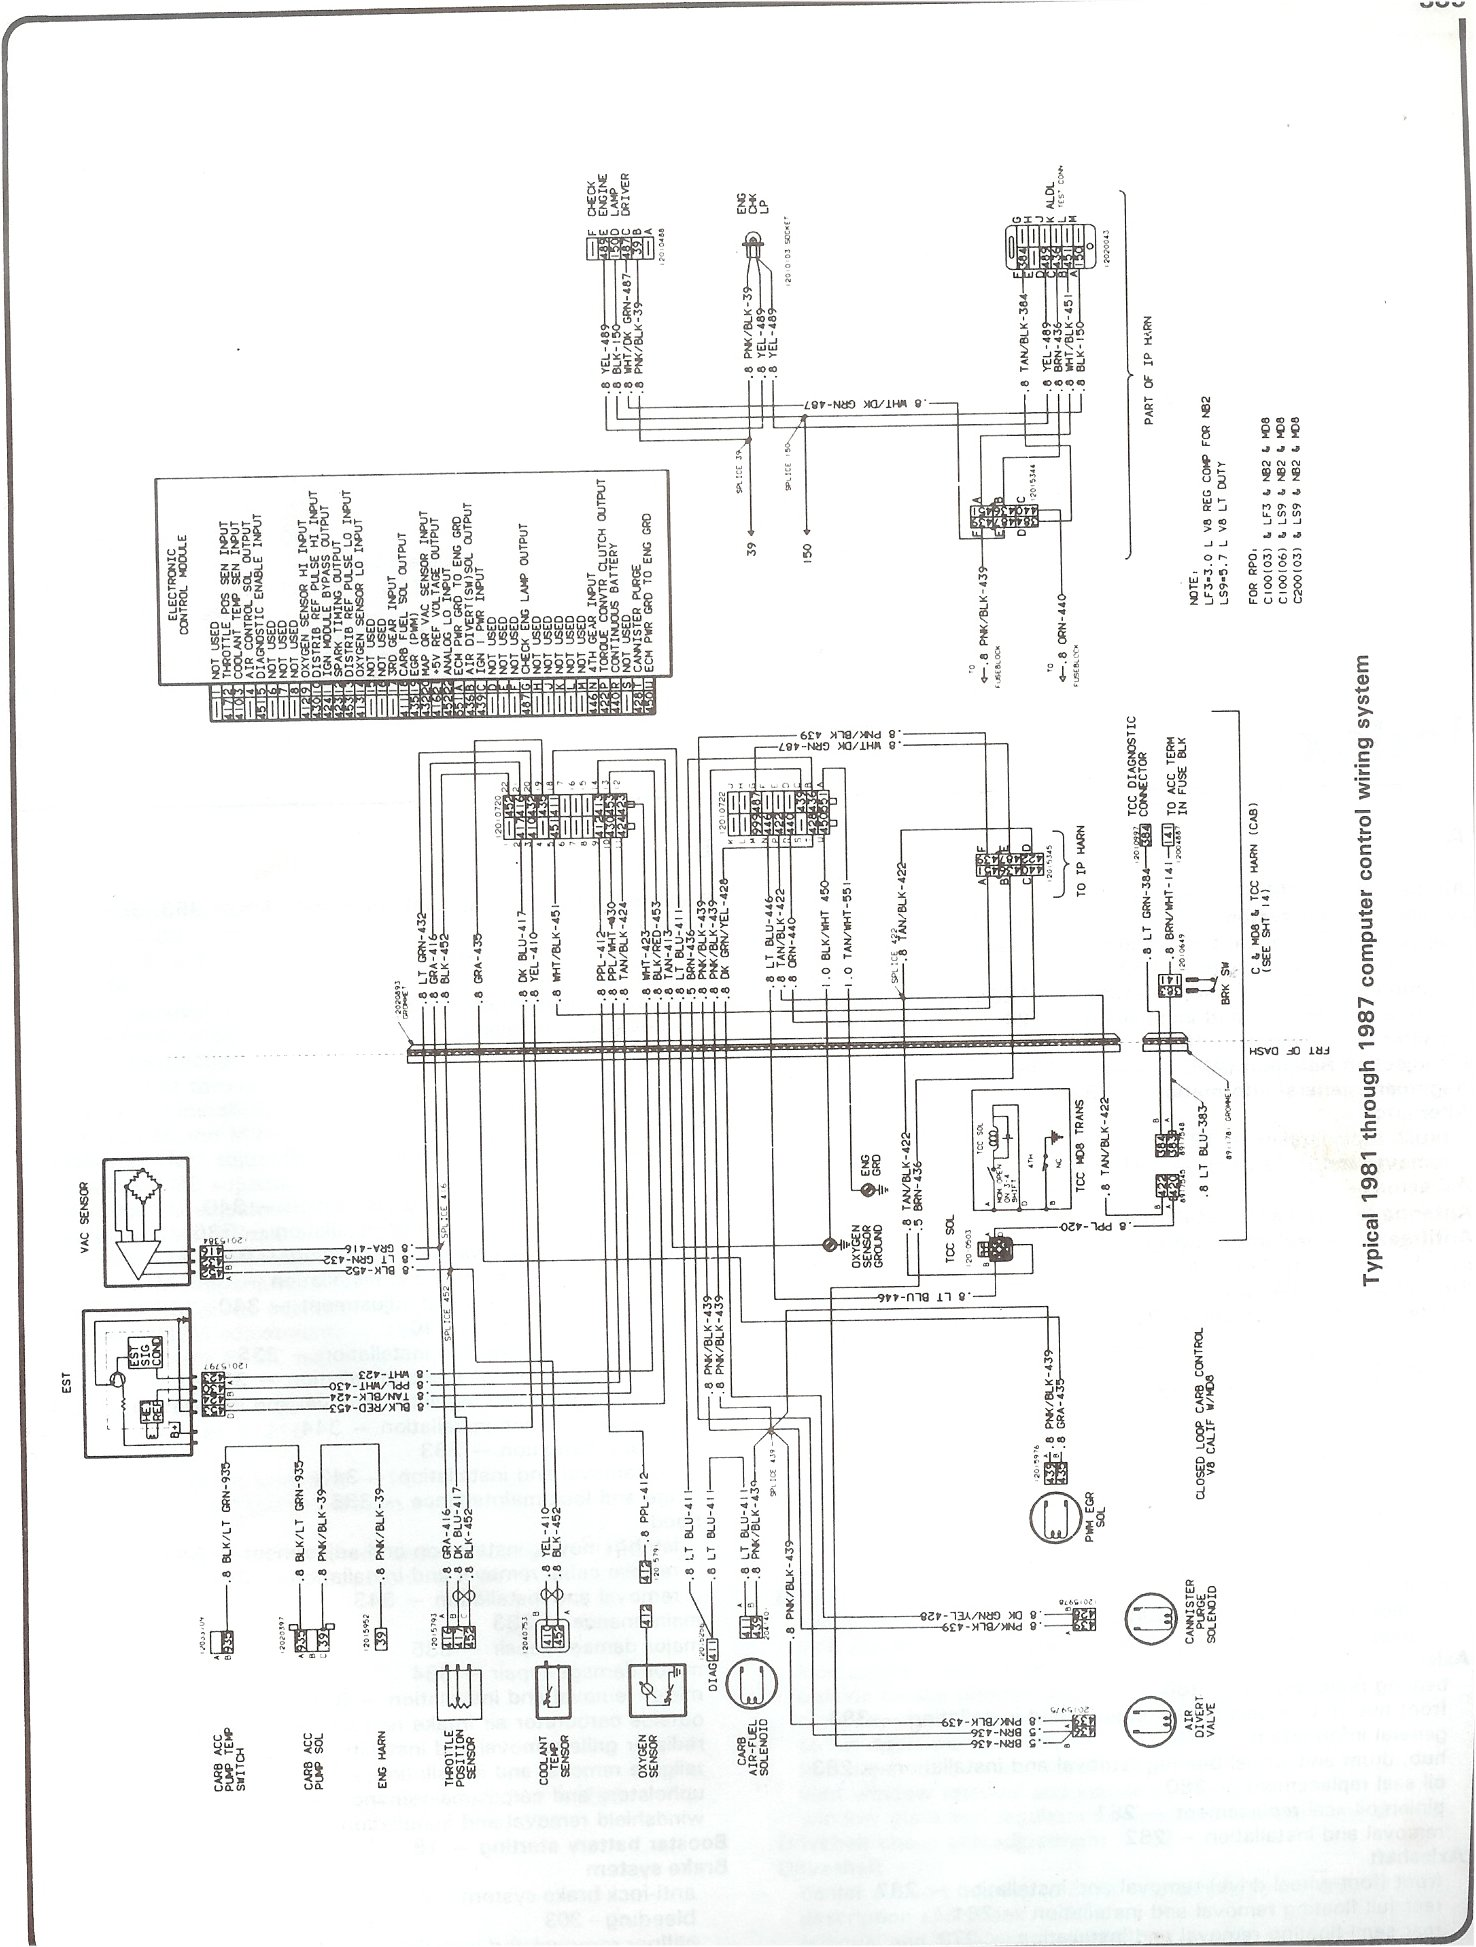 81 87_computer_control_wiring complete 73 87 wiring diagrams s10 wiring harness diagram at soozxer.org